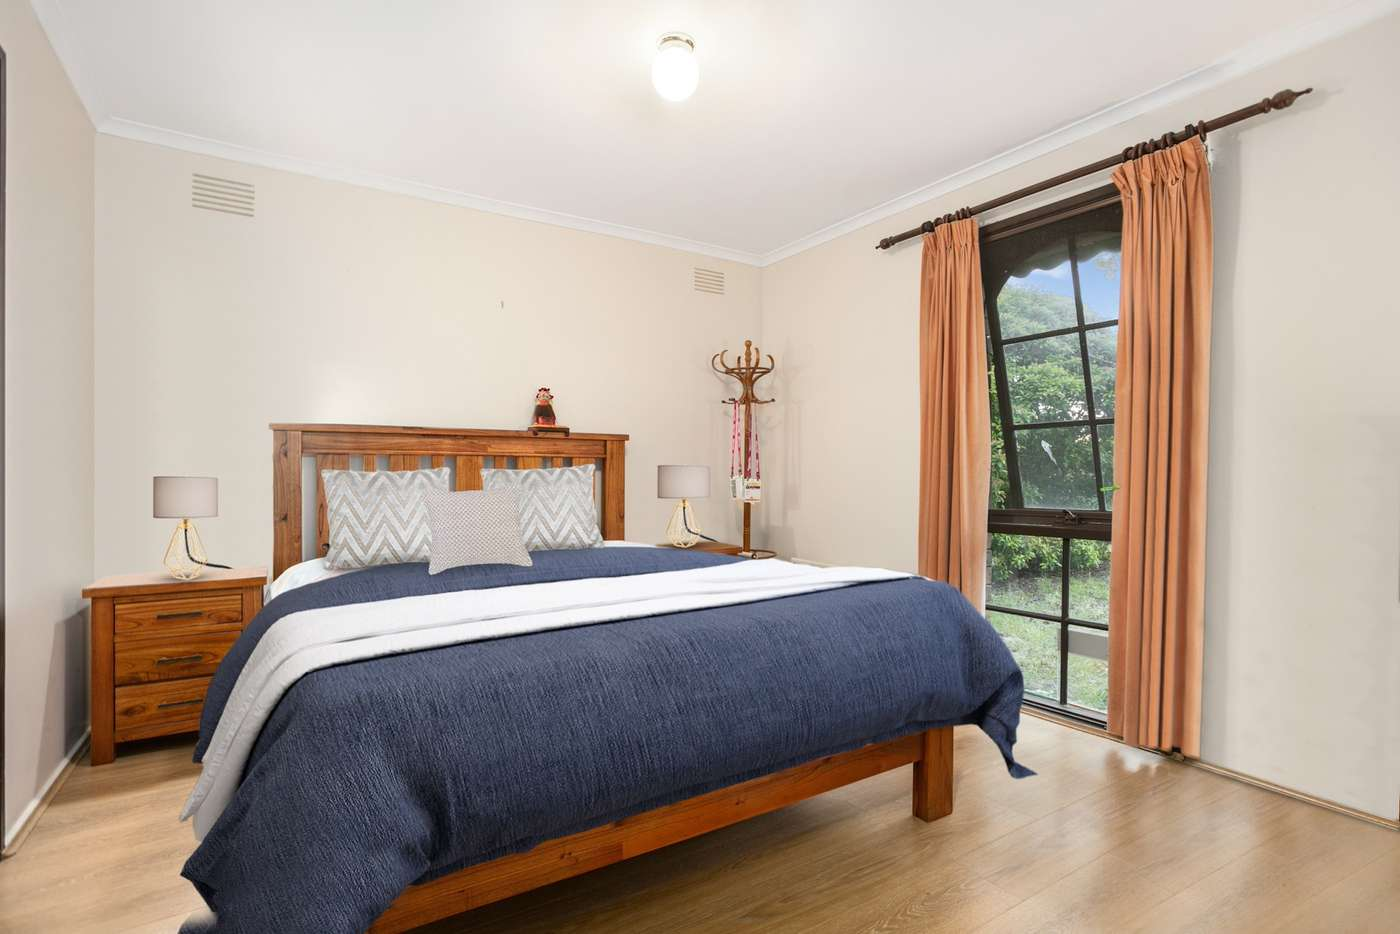 Sixth view of Homely house listing, 138 Jacksons Road, Mulgrave VIC 3170